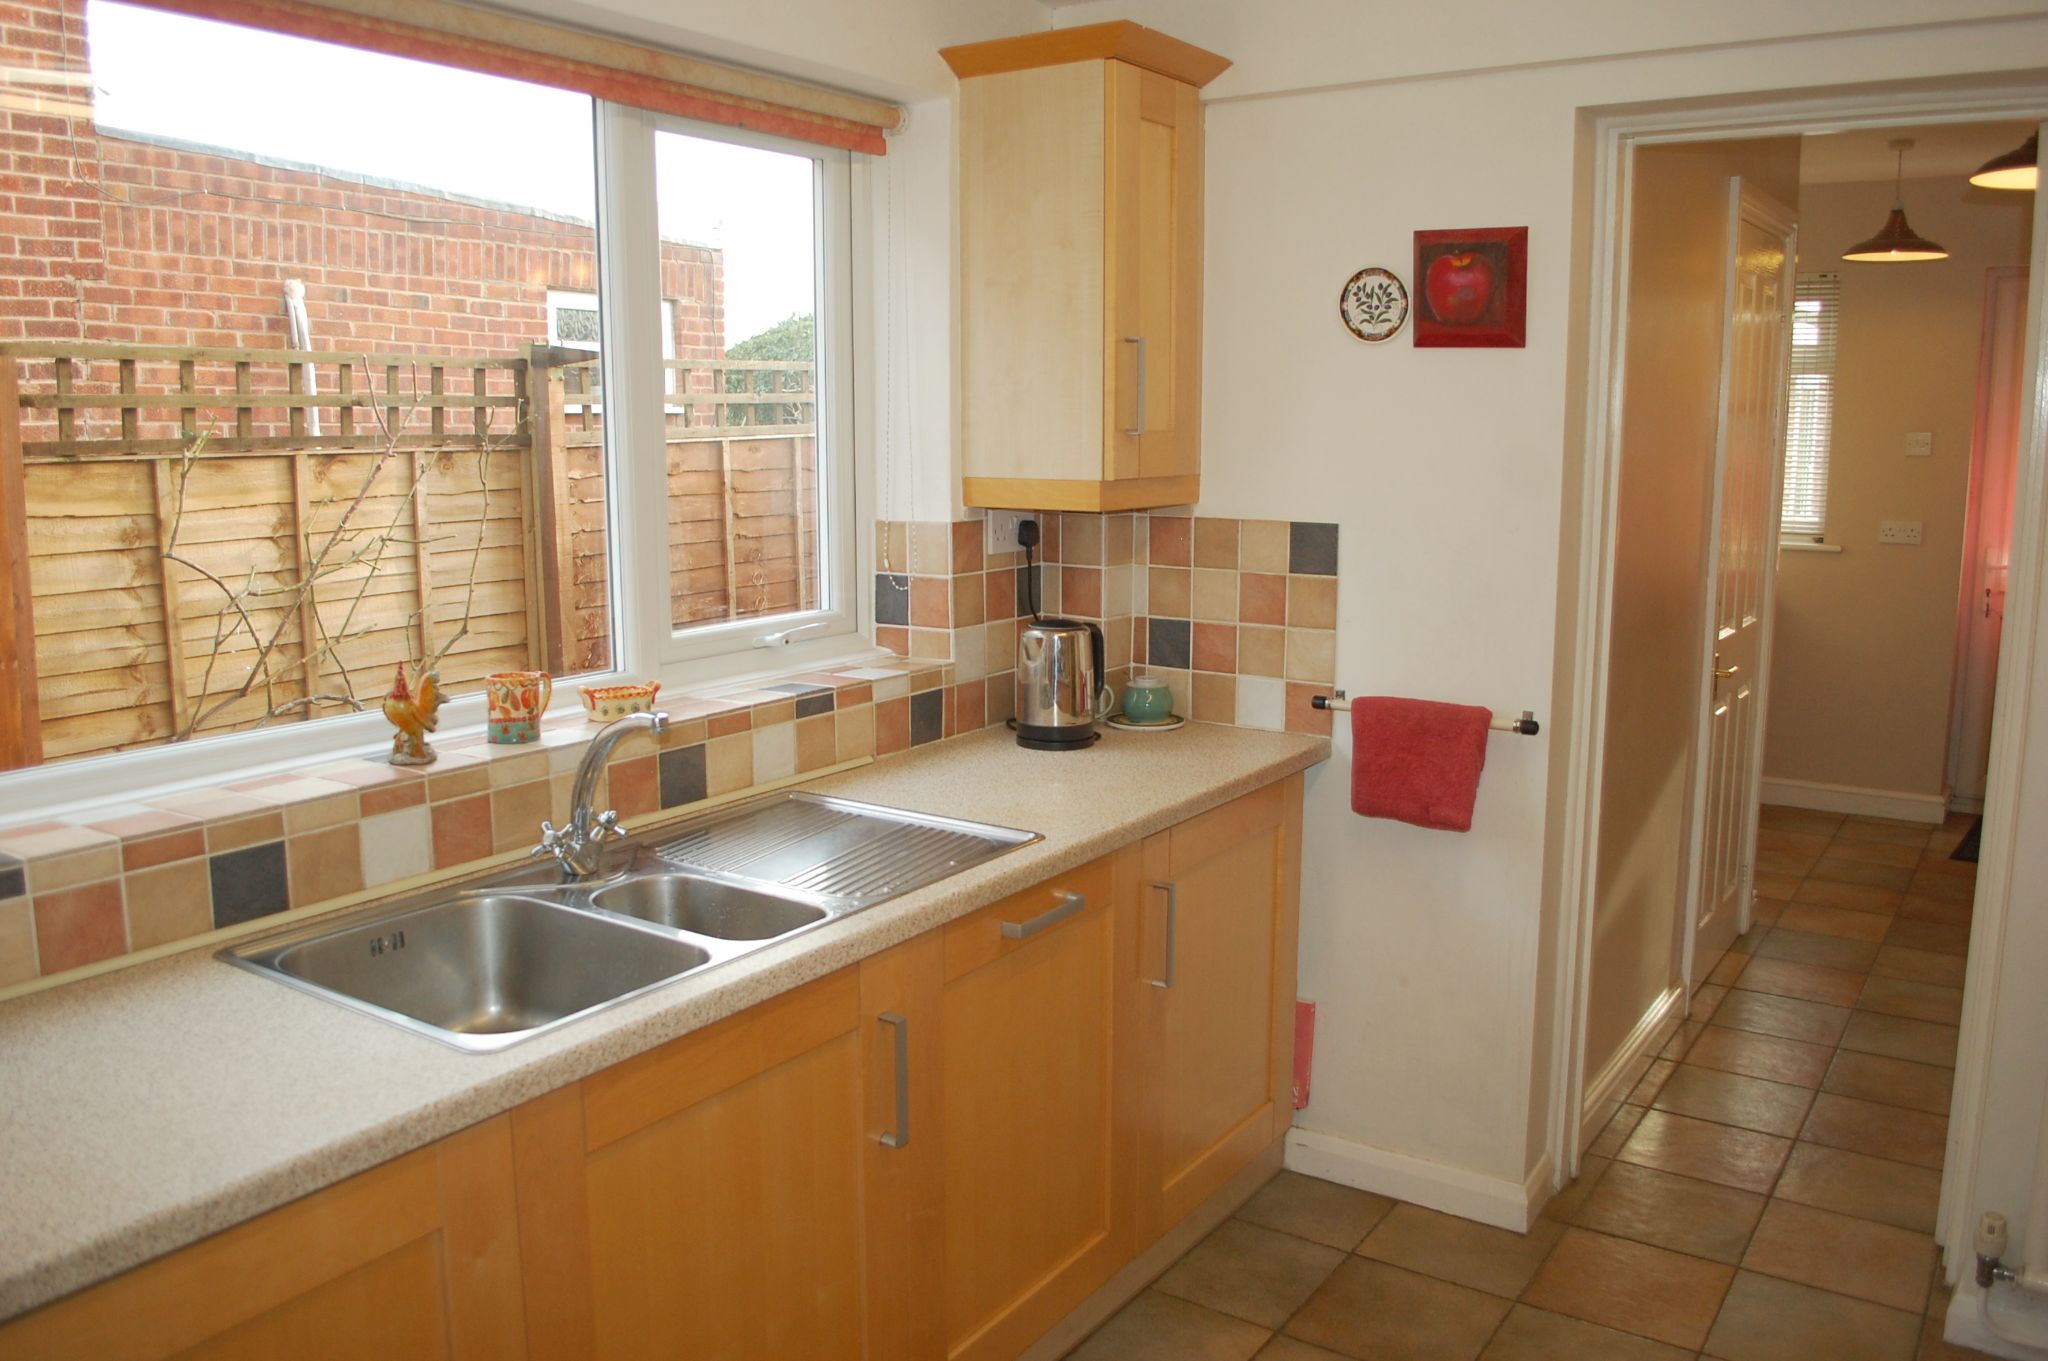 3 bedroom detached house SSTC Alcester - Photograph 10